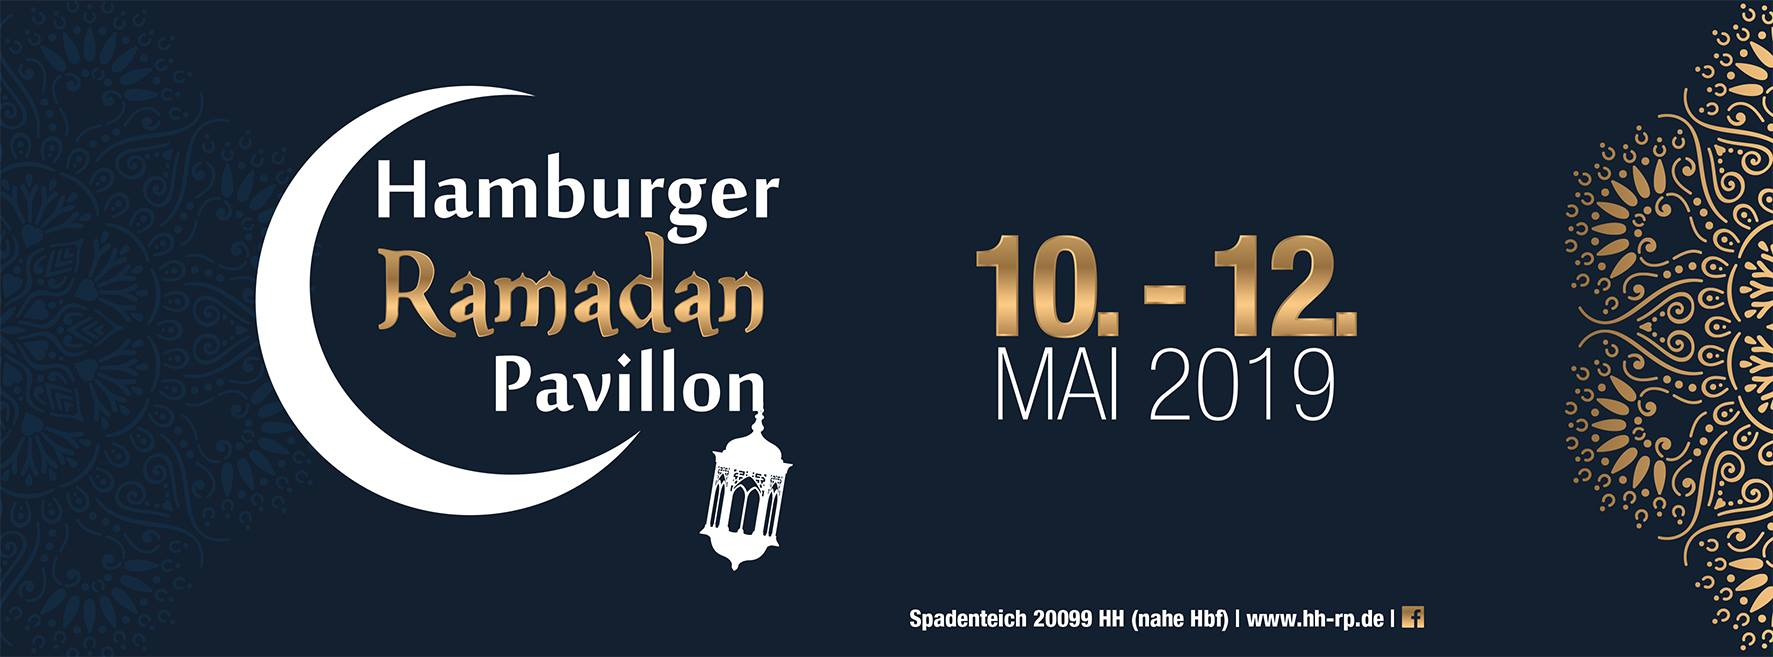 Hamburger Ramadan Pavillon 2019